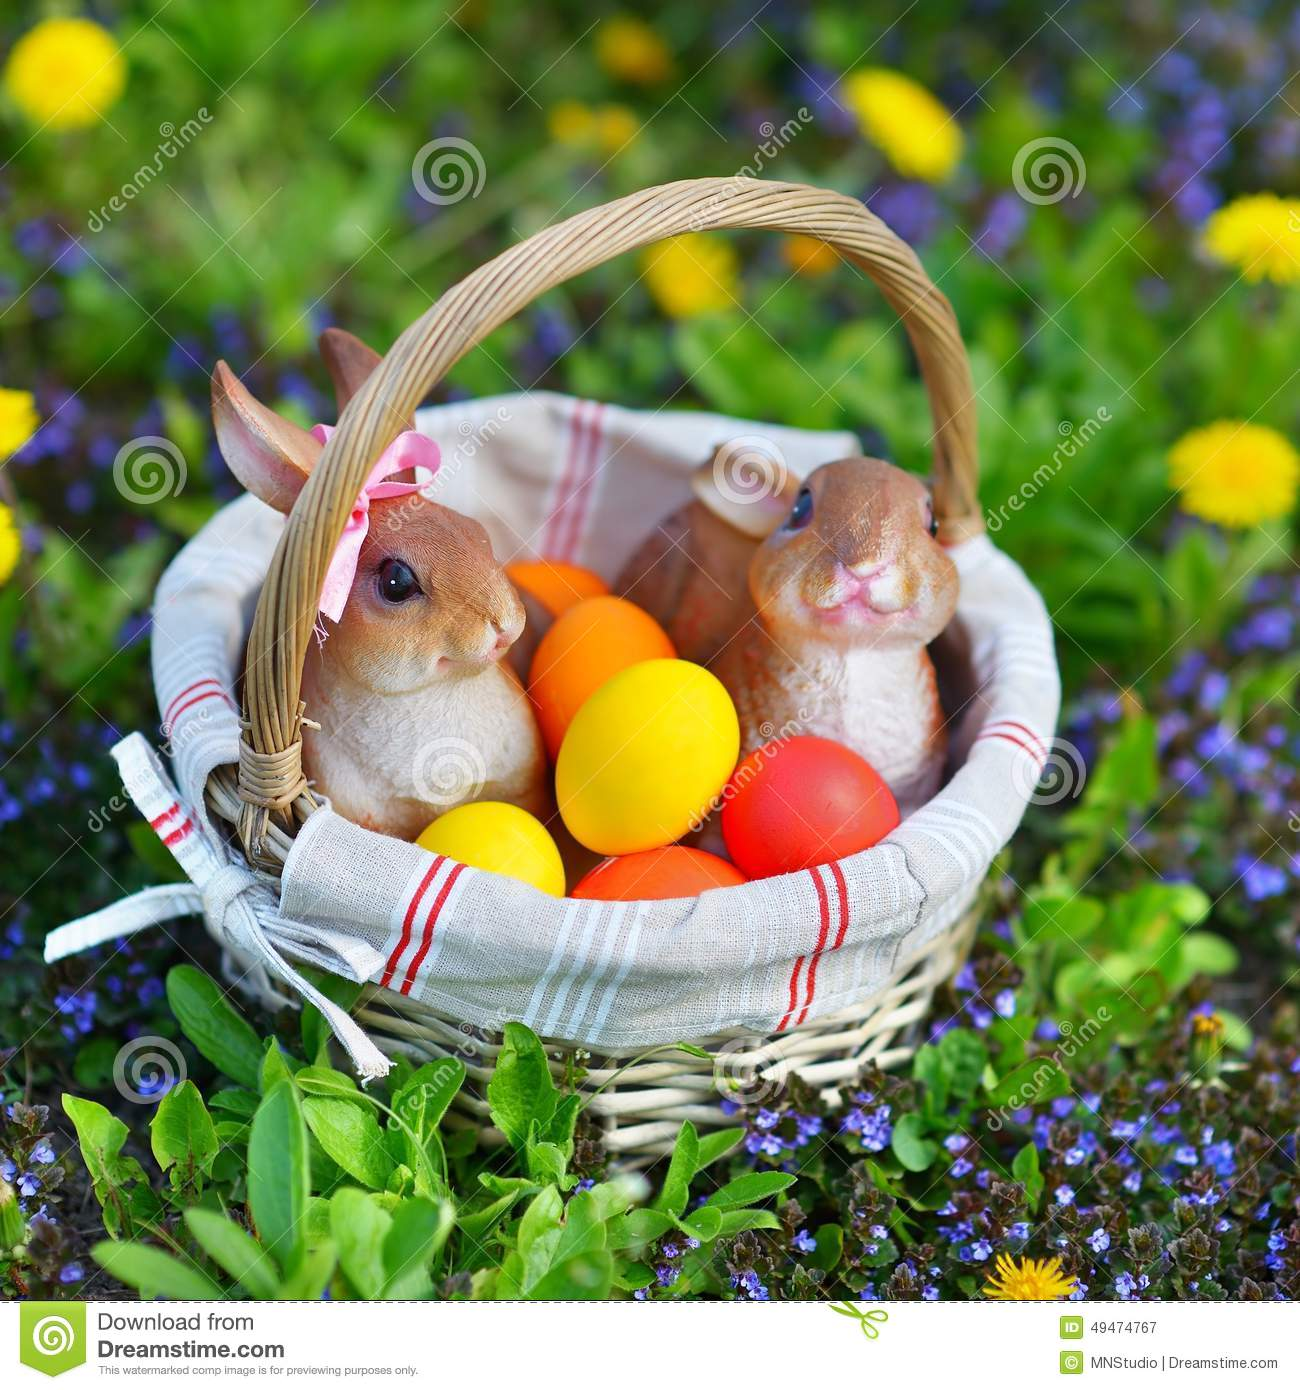 Colorful Easter Eggs In A Basket Stock Image - Image of happy ... for Easter Eggs In A Basket With A Bunny  150ifm